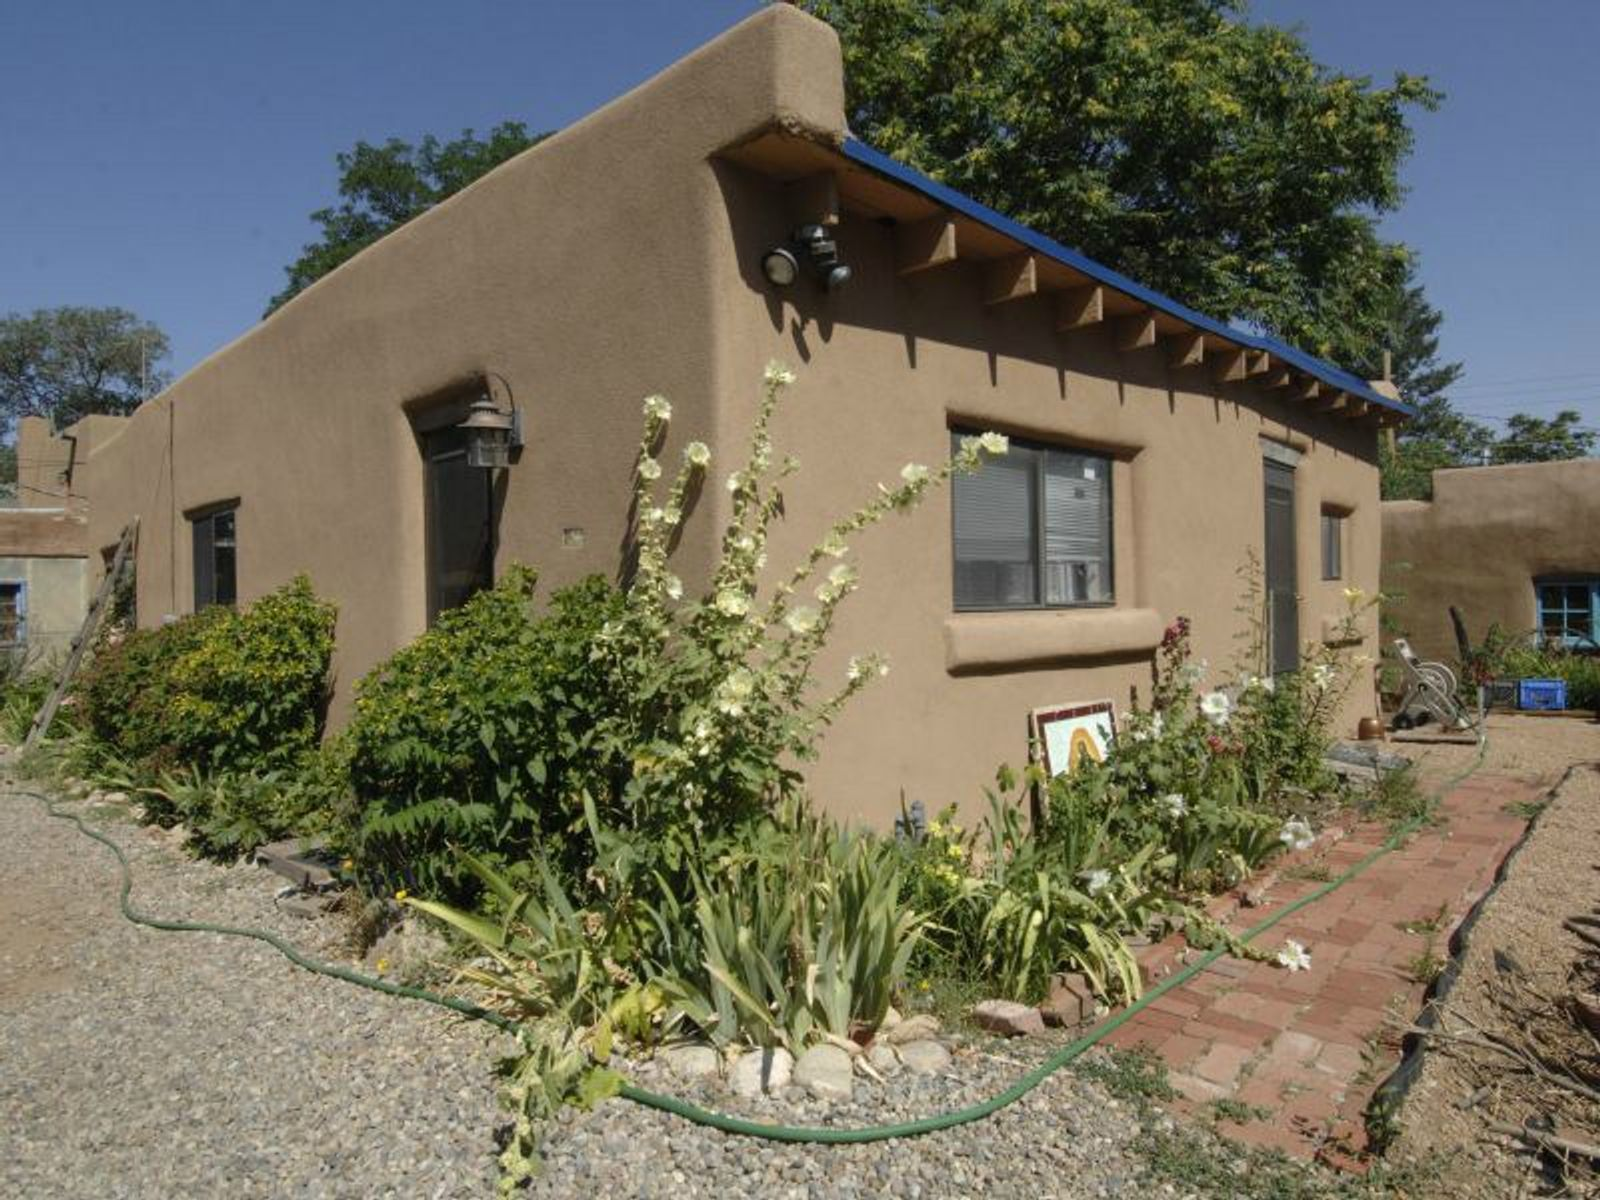 562 1/2 A East Garcia Street, Santa Fe NM Single Family Home - Santa Fe Real Estate